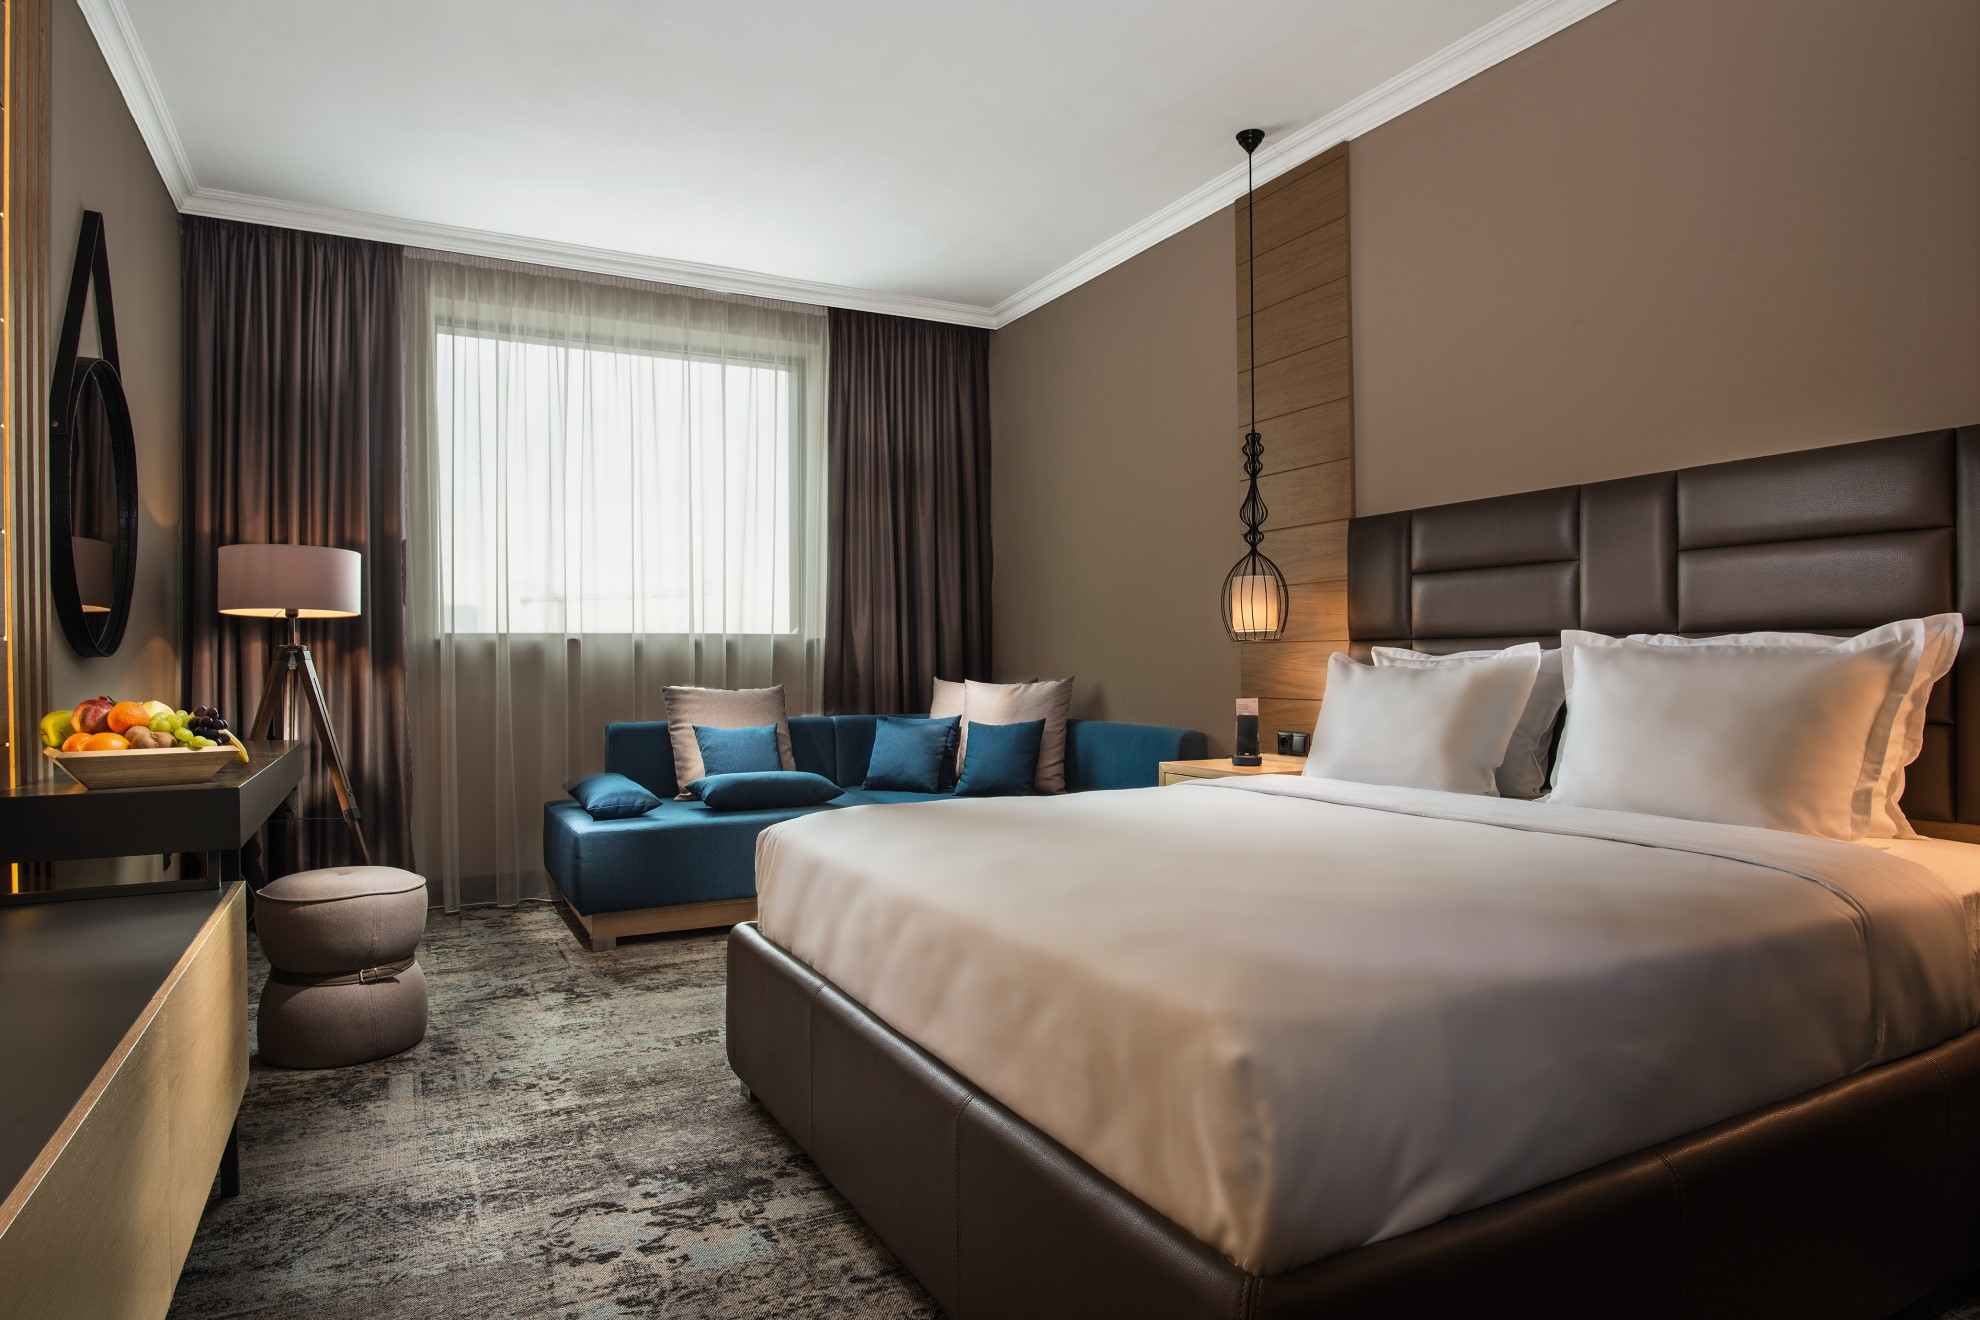 Best Western Plus Hotel Expo Sofia 4*